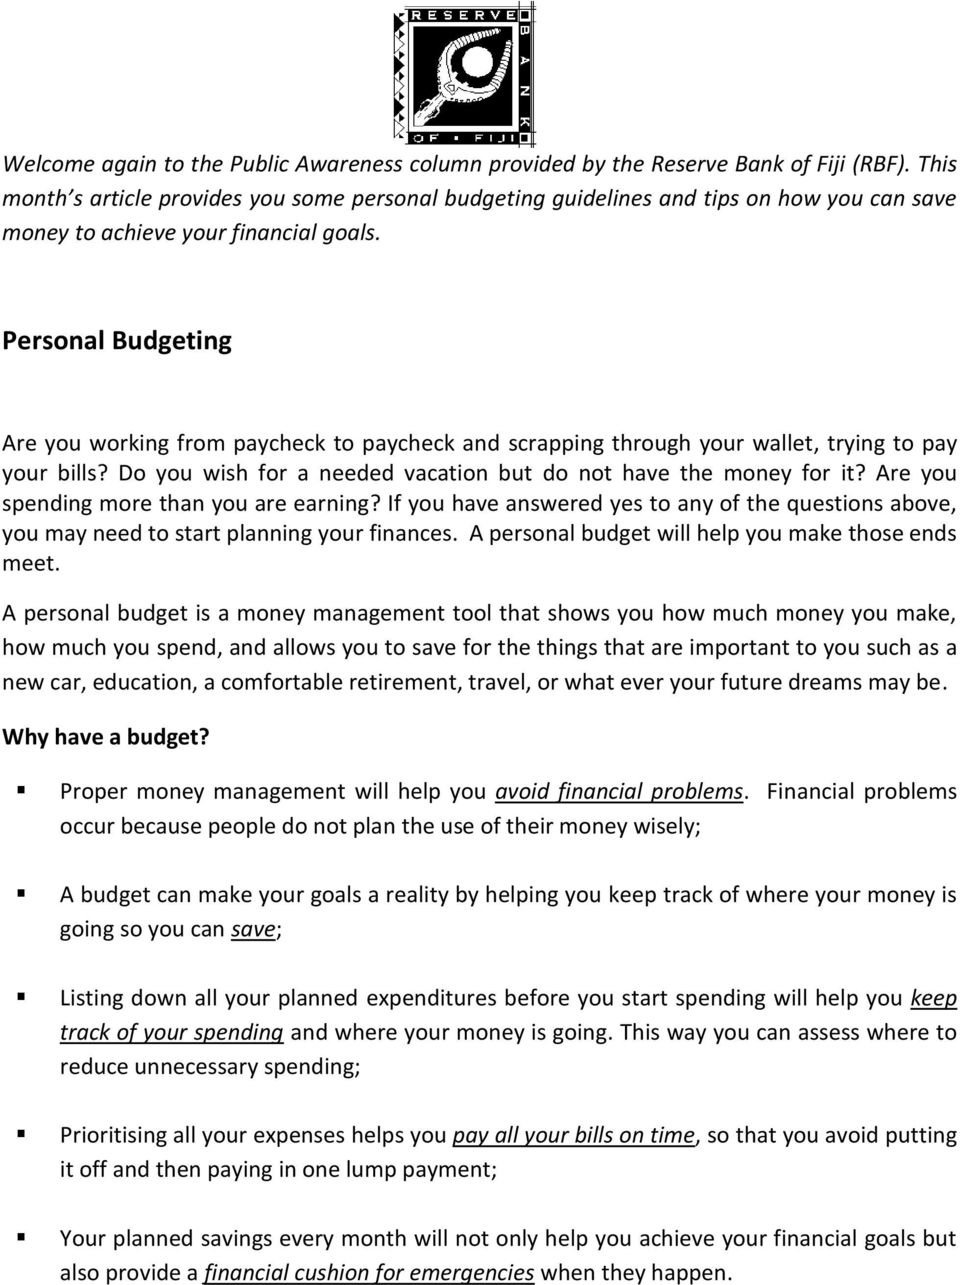 Personal Budgeting Are you working from paycheck to paycheck and scrapping through your wallet, trying to pay your bills? Do you wish for a needed vacation but do not have the money for it?